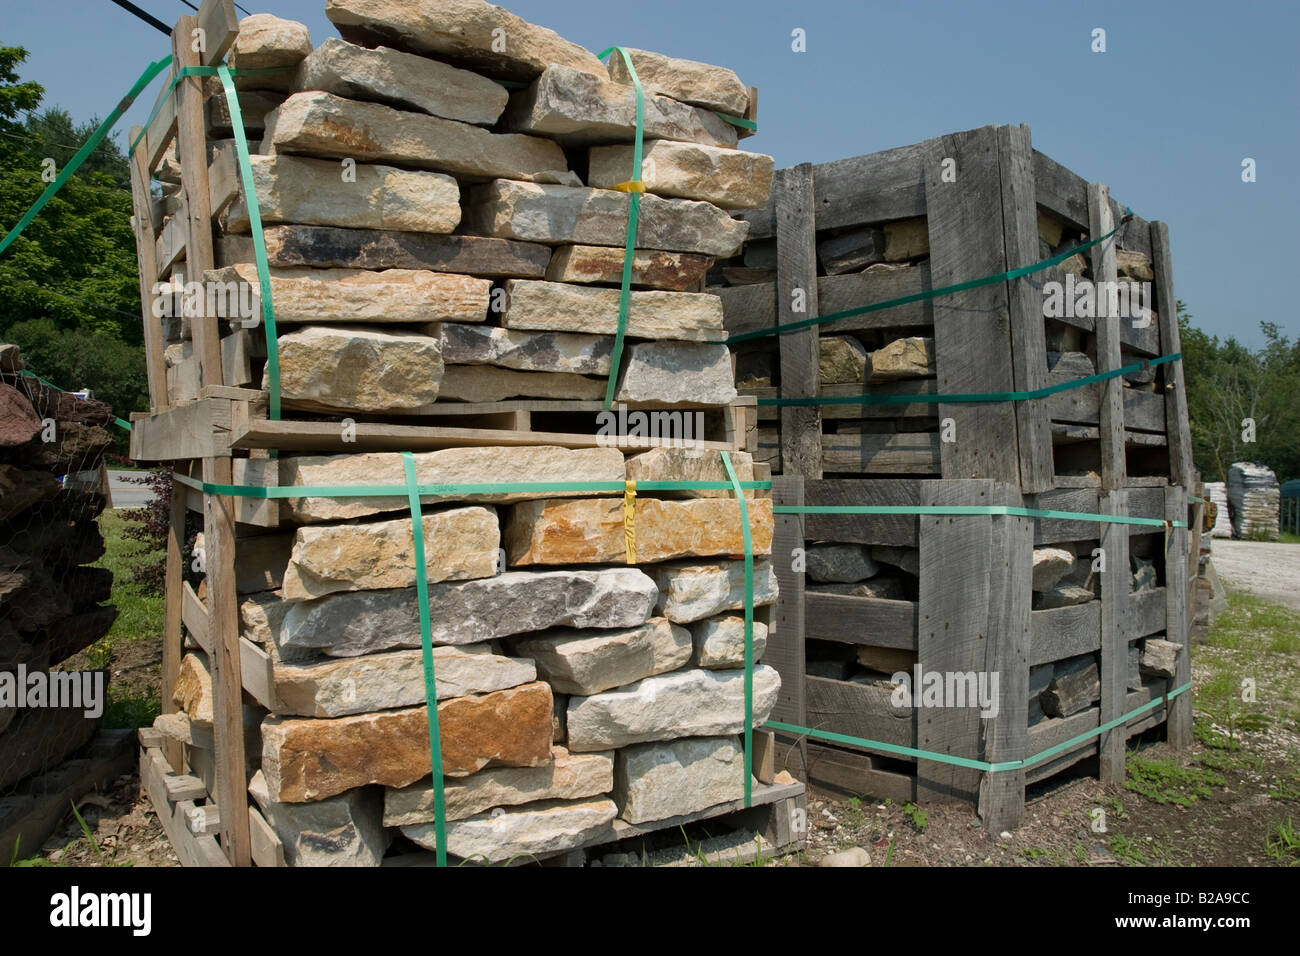 Landscaping stones are stacked and waiting for sale in the gardening supply  store yard - Landscaping Stones Are Stacked And Waiting For Sale In The Gardening